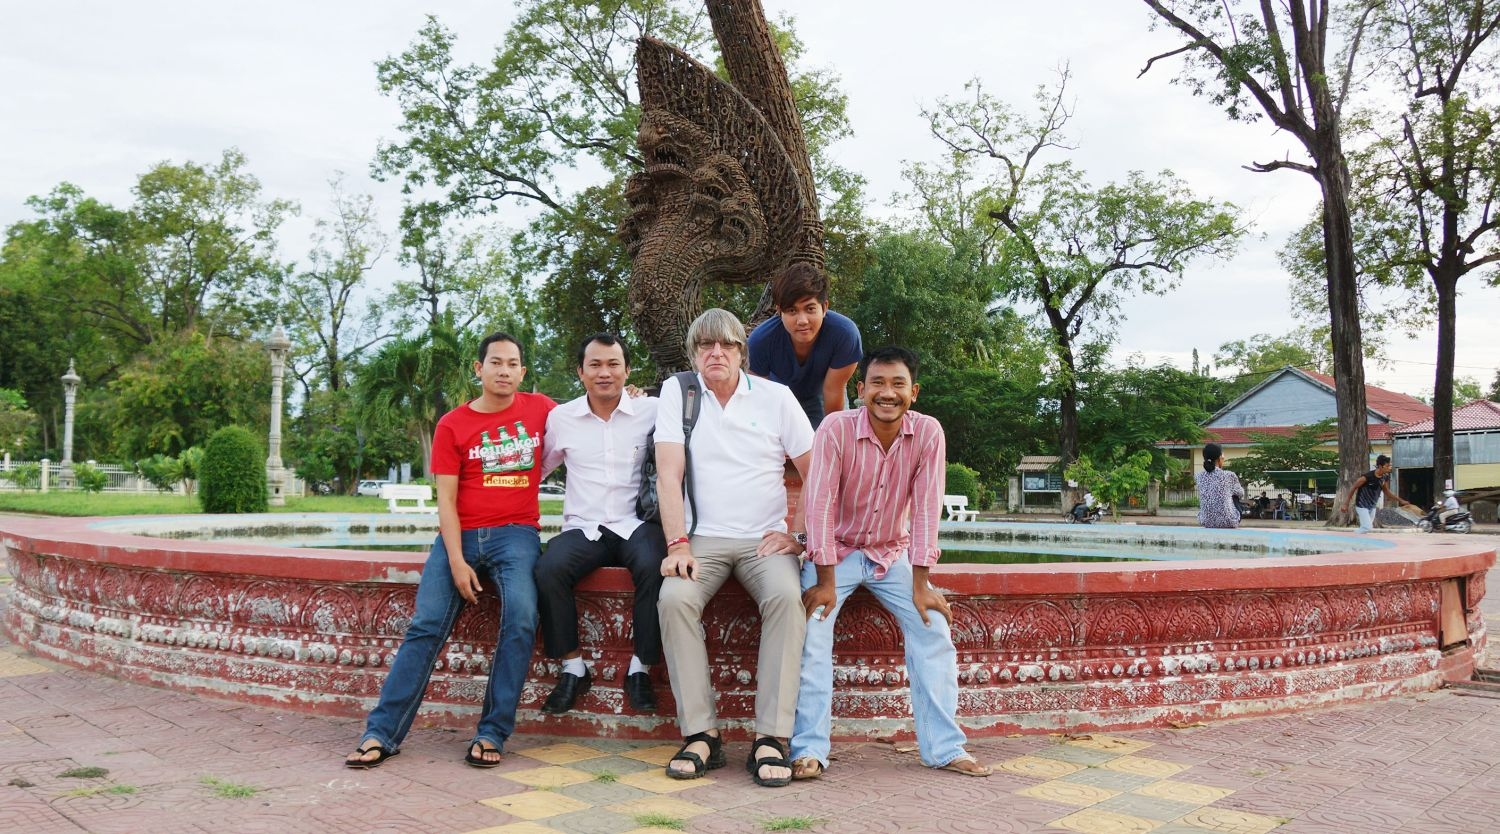 Apay E News Sept 2014 August 19 2016 Version 20142 Sop Alumni In Cambodia Meet With Icf Coordinator Max Ediger Center Battambang Province To Plan Activities For The Upcoming Year